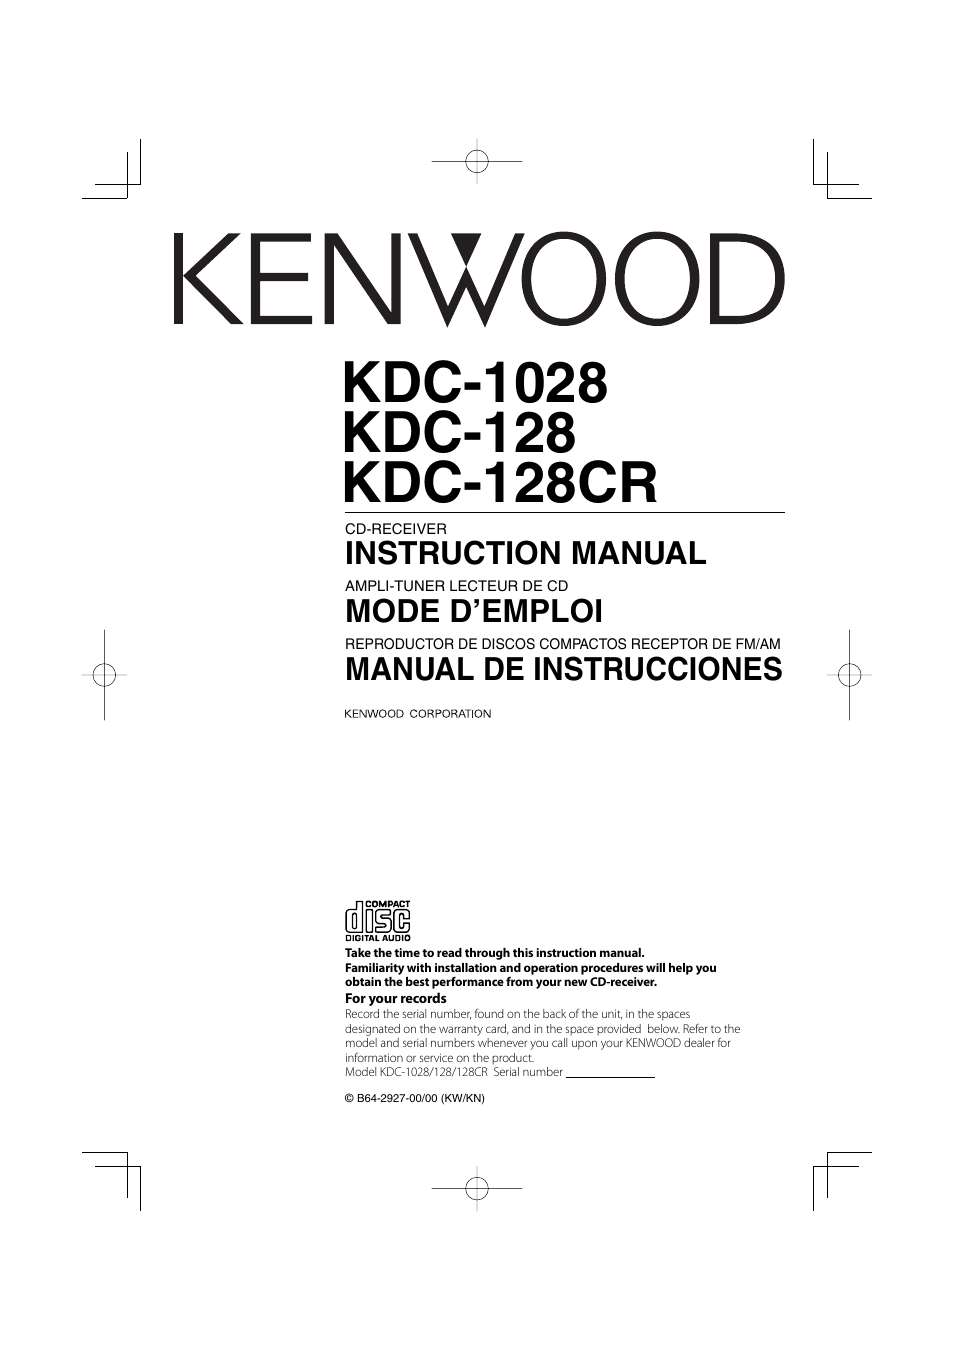 hight resolution of kenwood kdc 152 wiring diagram beautiful 138 in fonar me source kenwood kdc 128cr user manual 72 pages also for kdc 1028 kdc 128 kenwood kdc 205